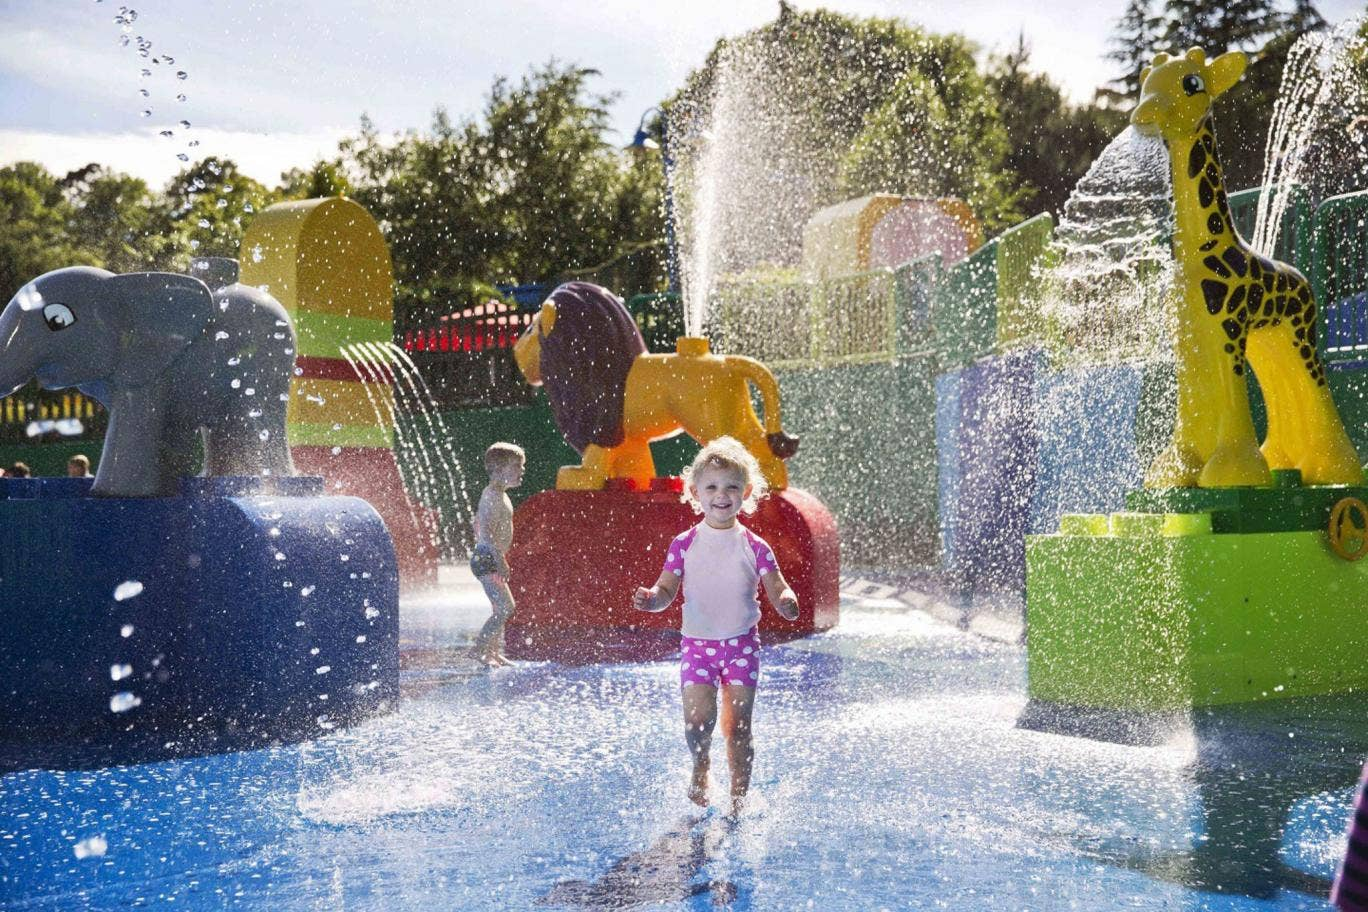 Splash out: at Legoland Windsor you can get a two-for-one deal